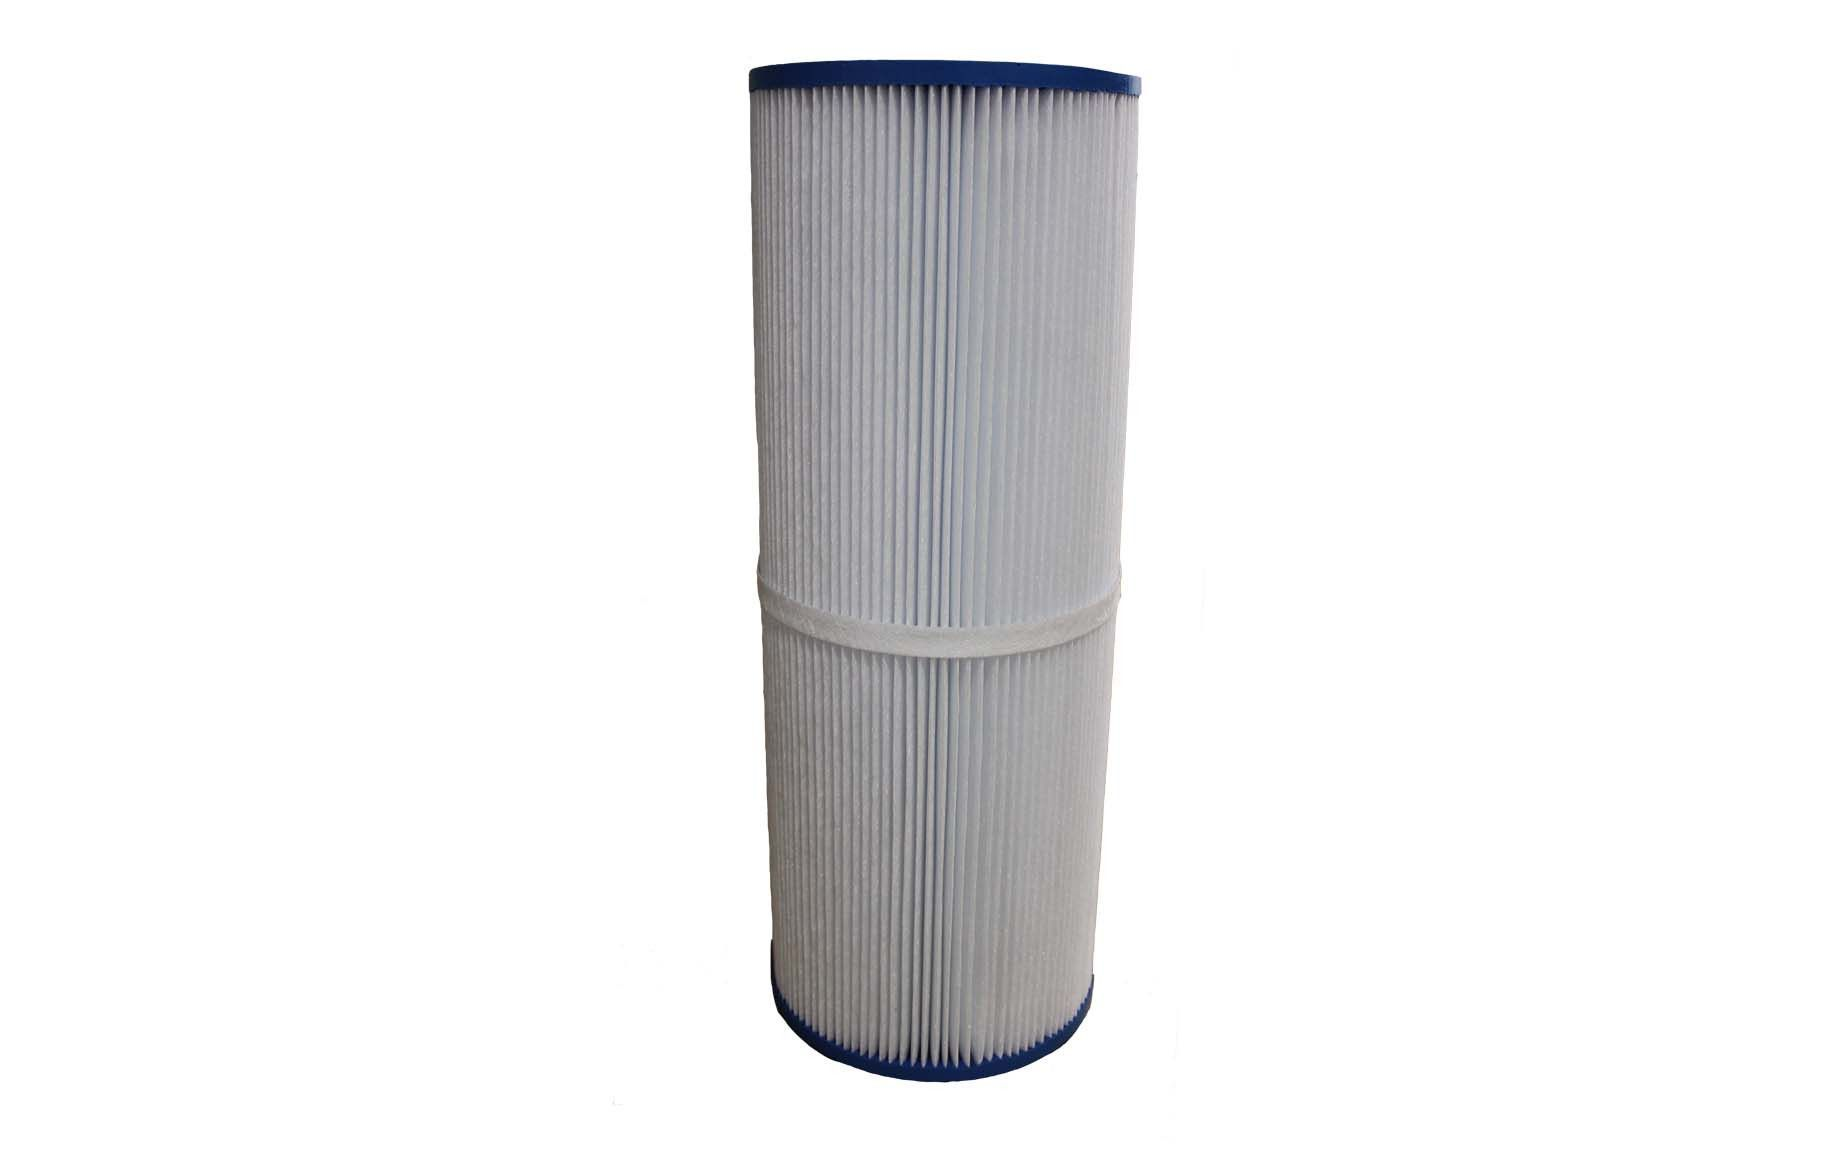 Pool Filter Designed for Various Pools and Hot Tubs